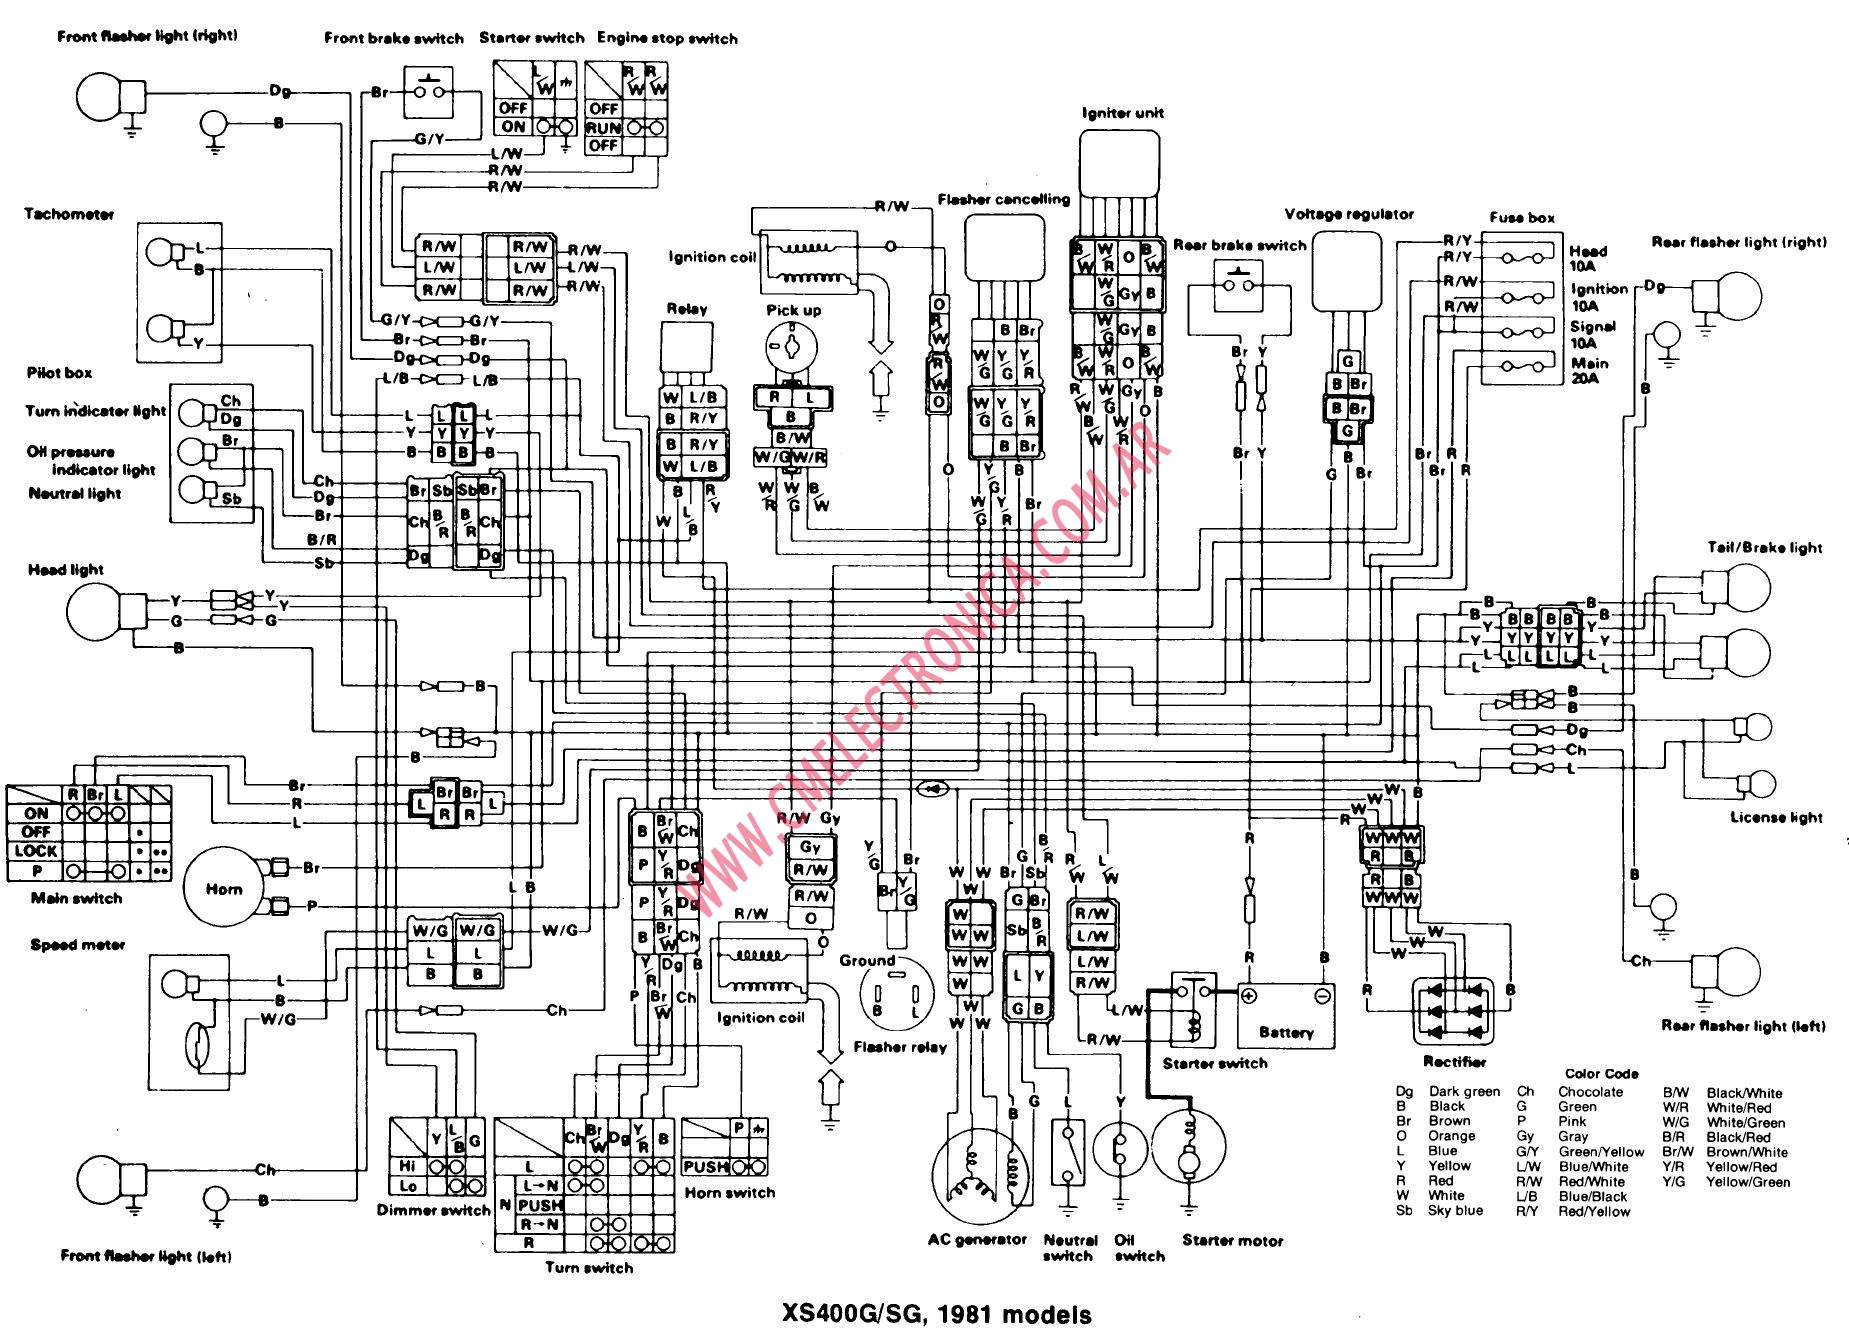 85 hp yamaha power trim wiring diagram get free image Yamaha 703 Control Manual Yamaha 703 Remote Control Manual